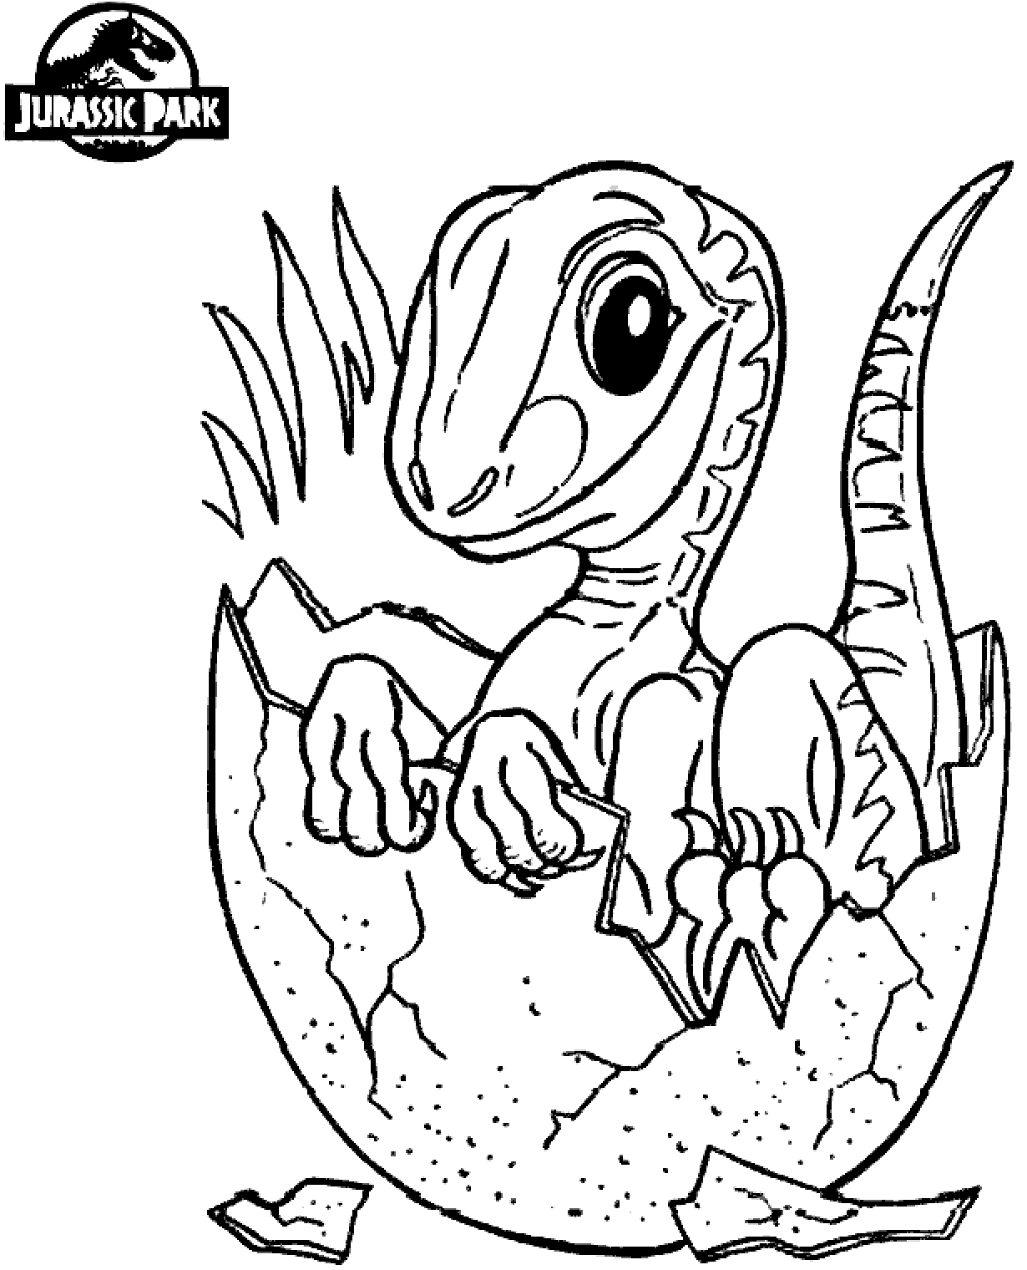 dinosaur pictures for kids coloring pages for kids dinosaur coloring pages for kids kids for pictures dinosaur